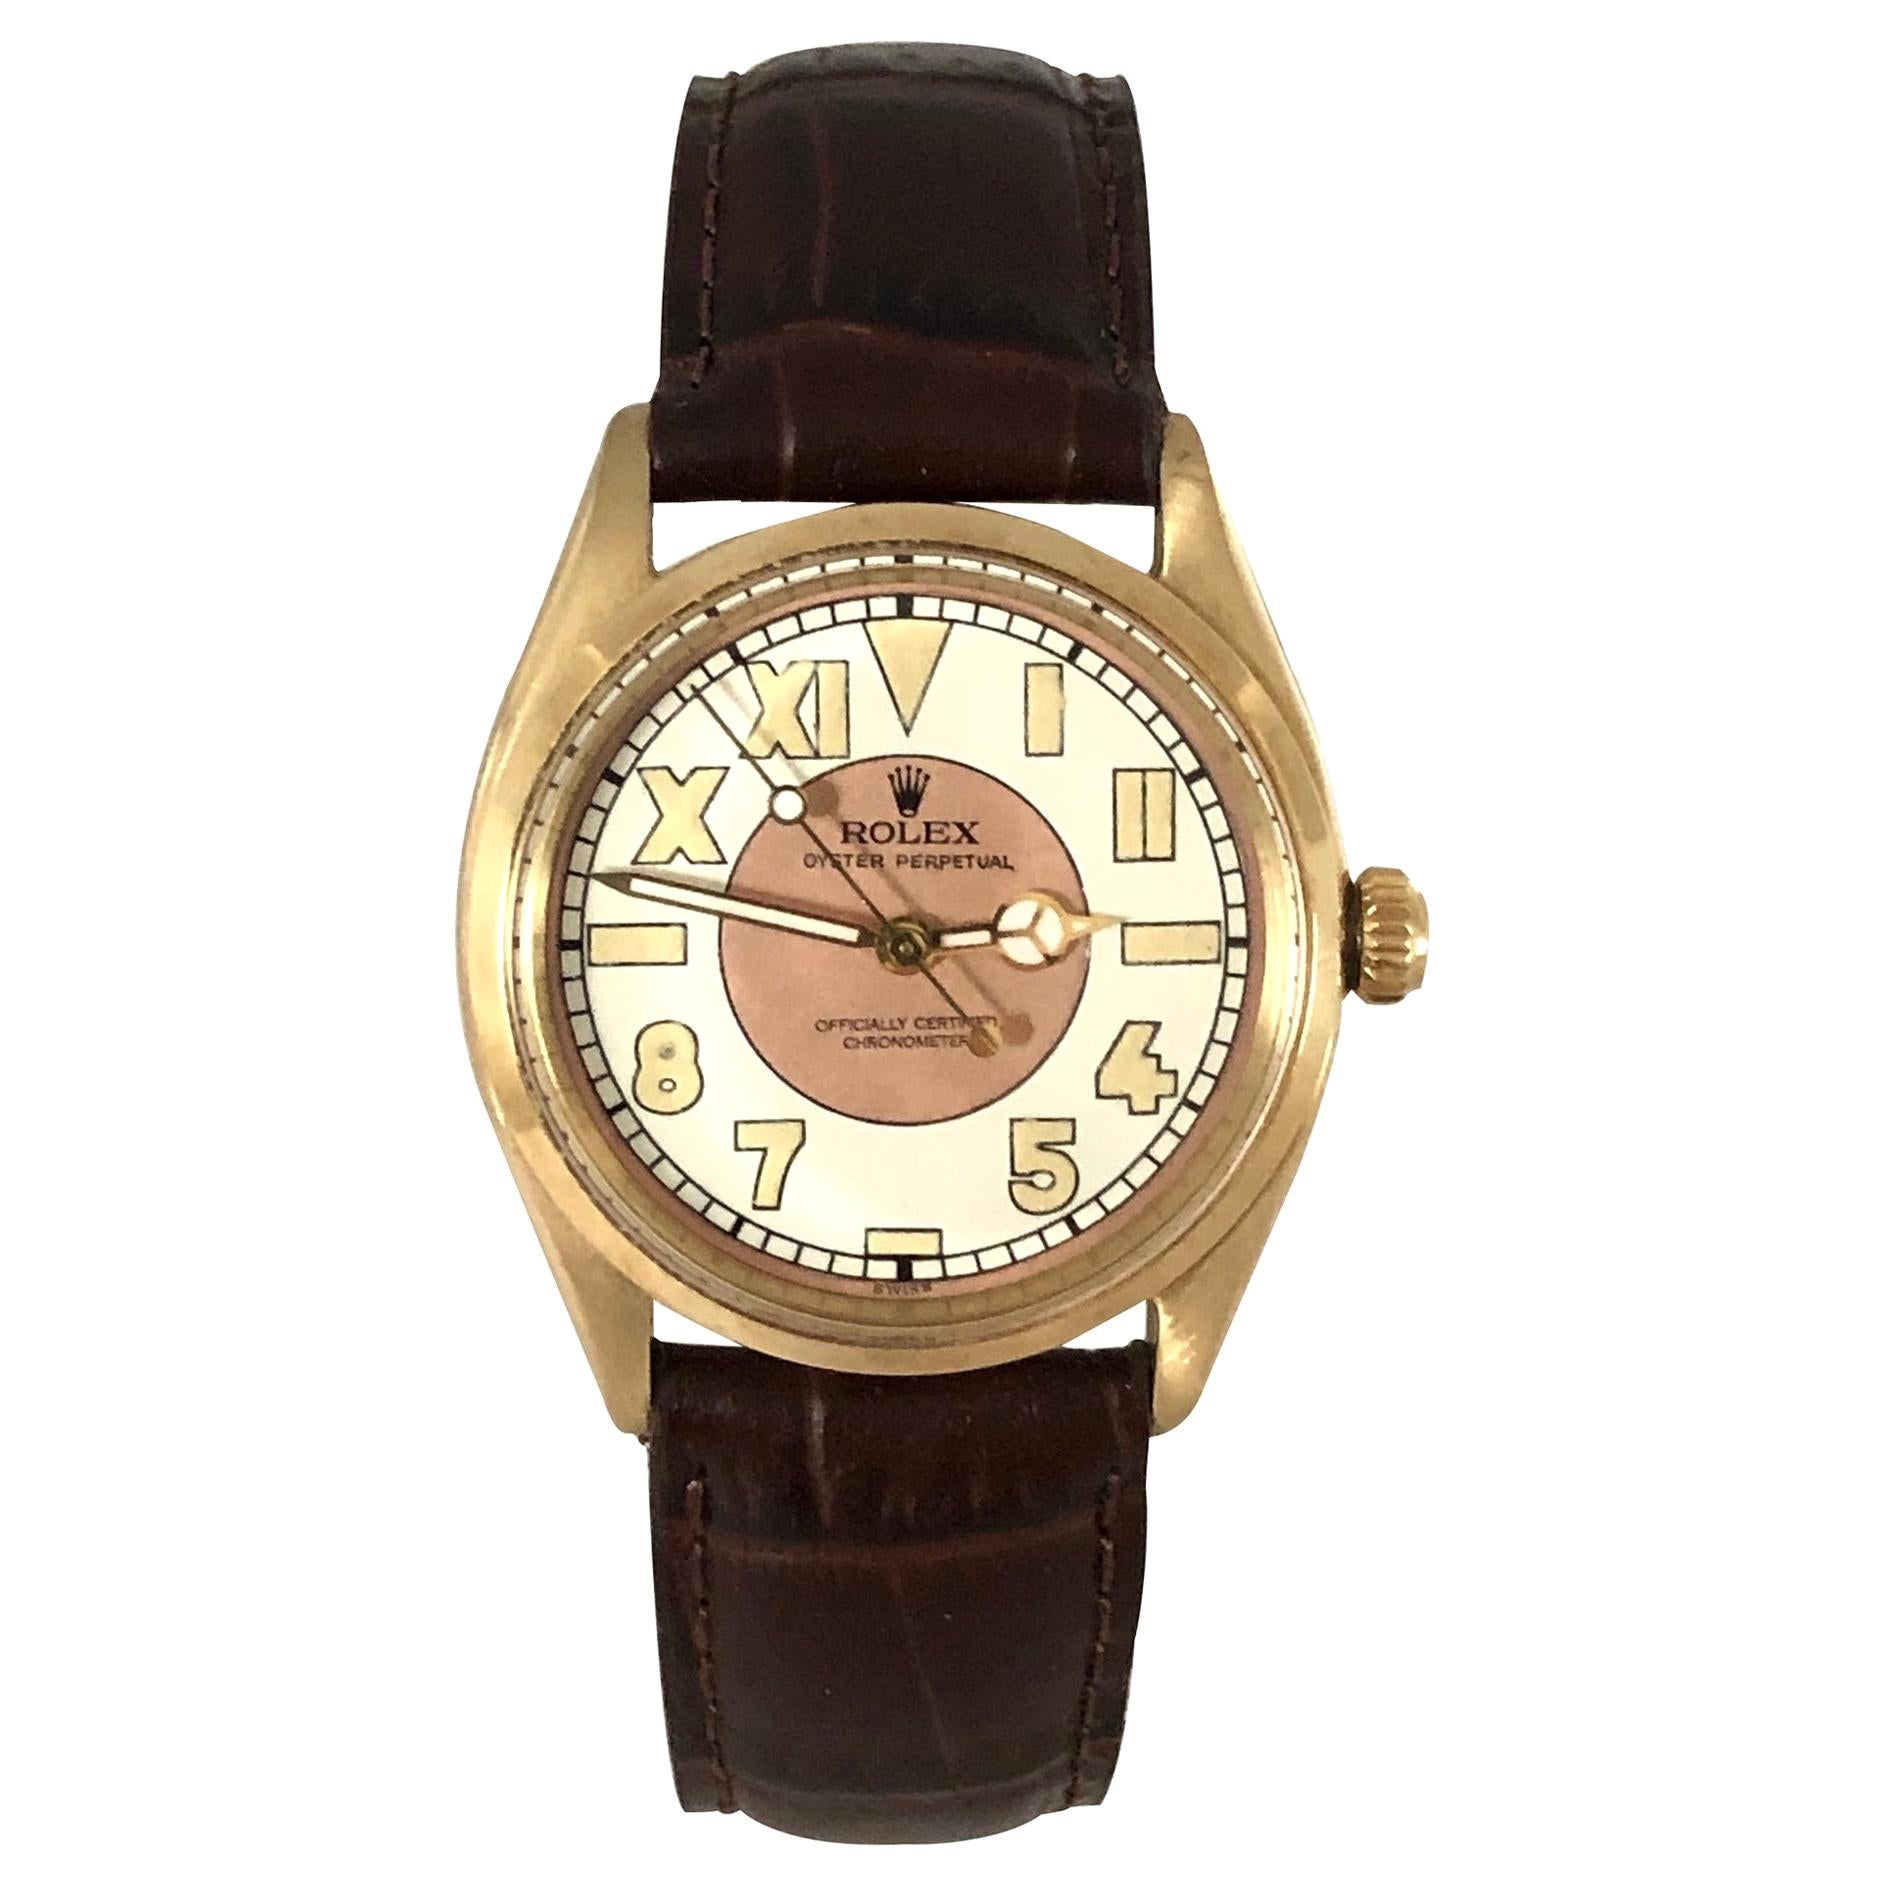 Rolex Oyster Perpetual Vintage Gold Automatic Wristwatch with Bubble Back Dial